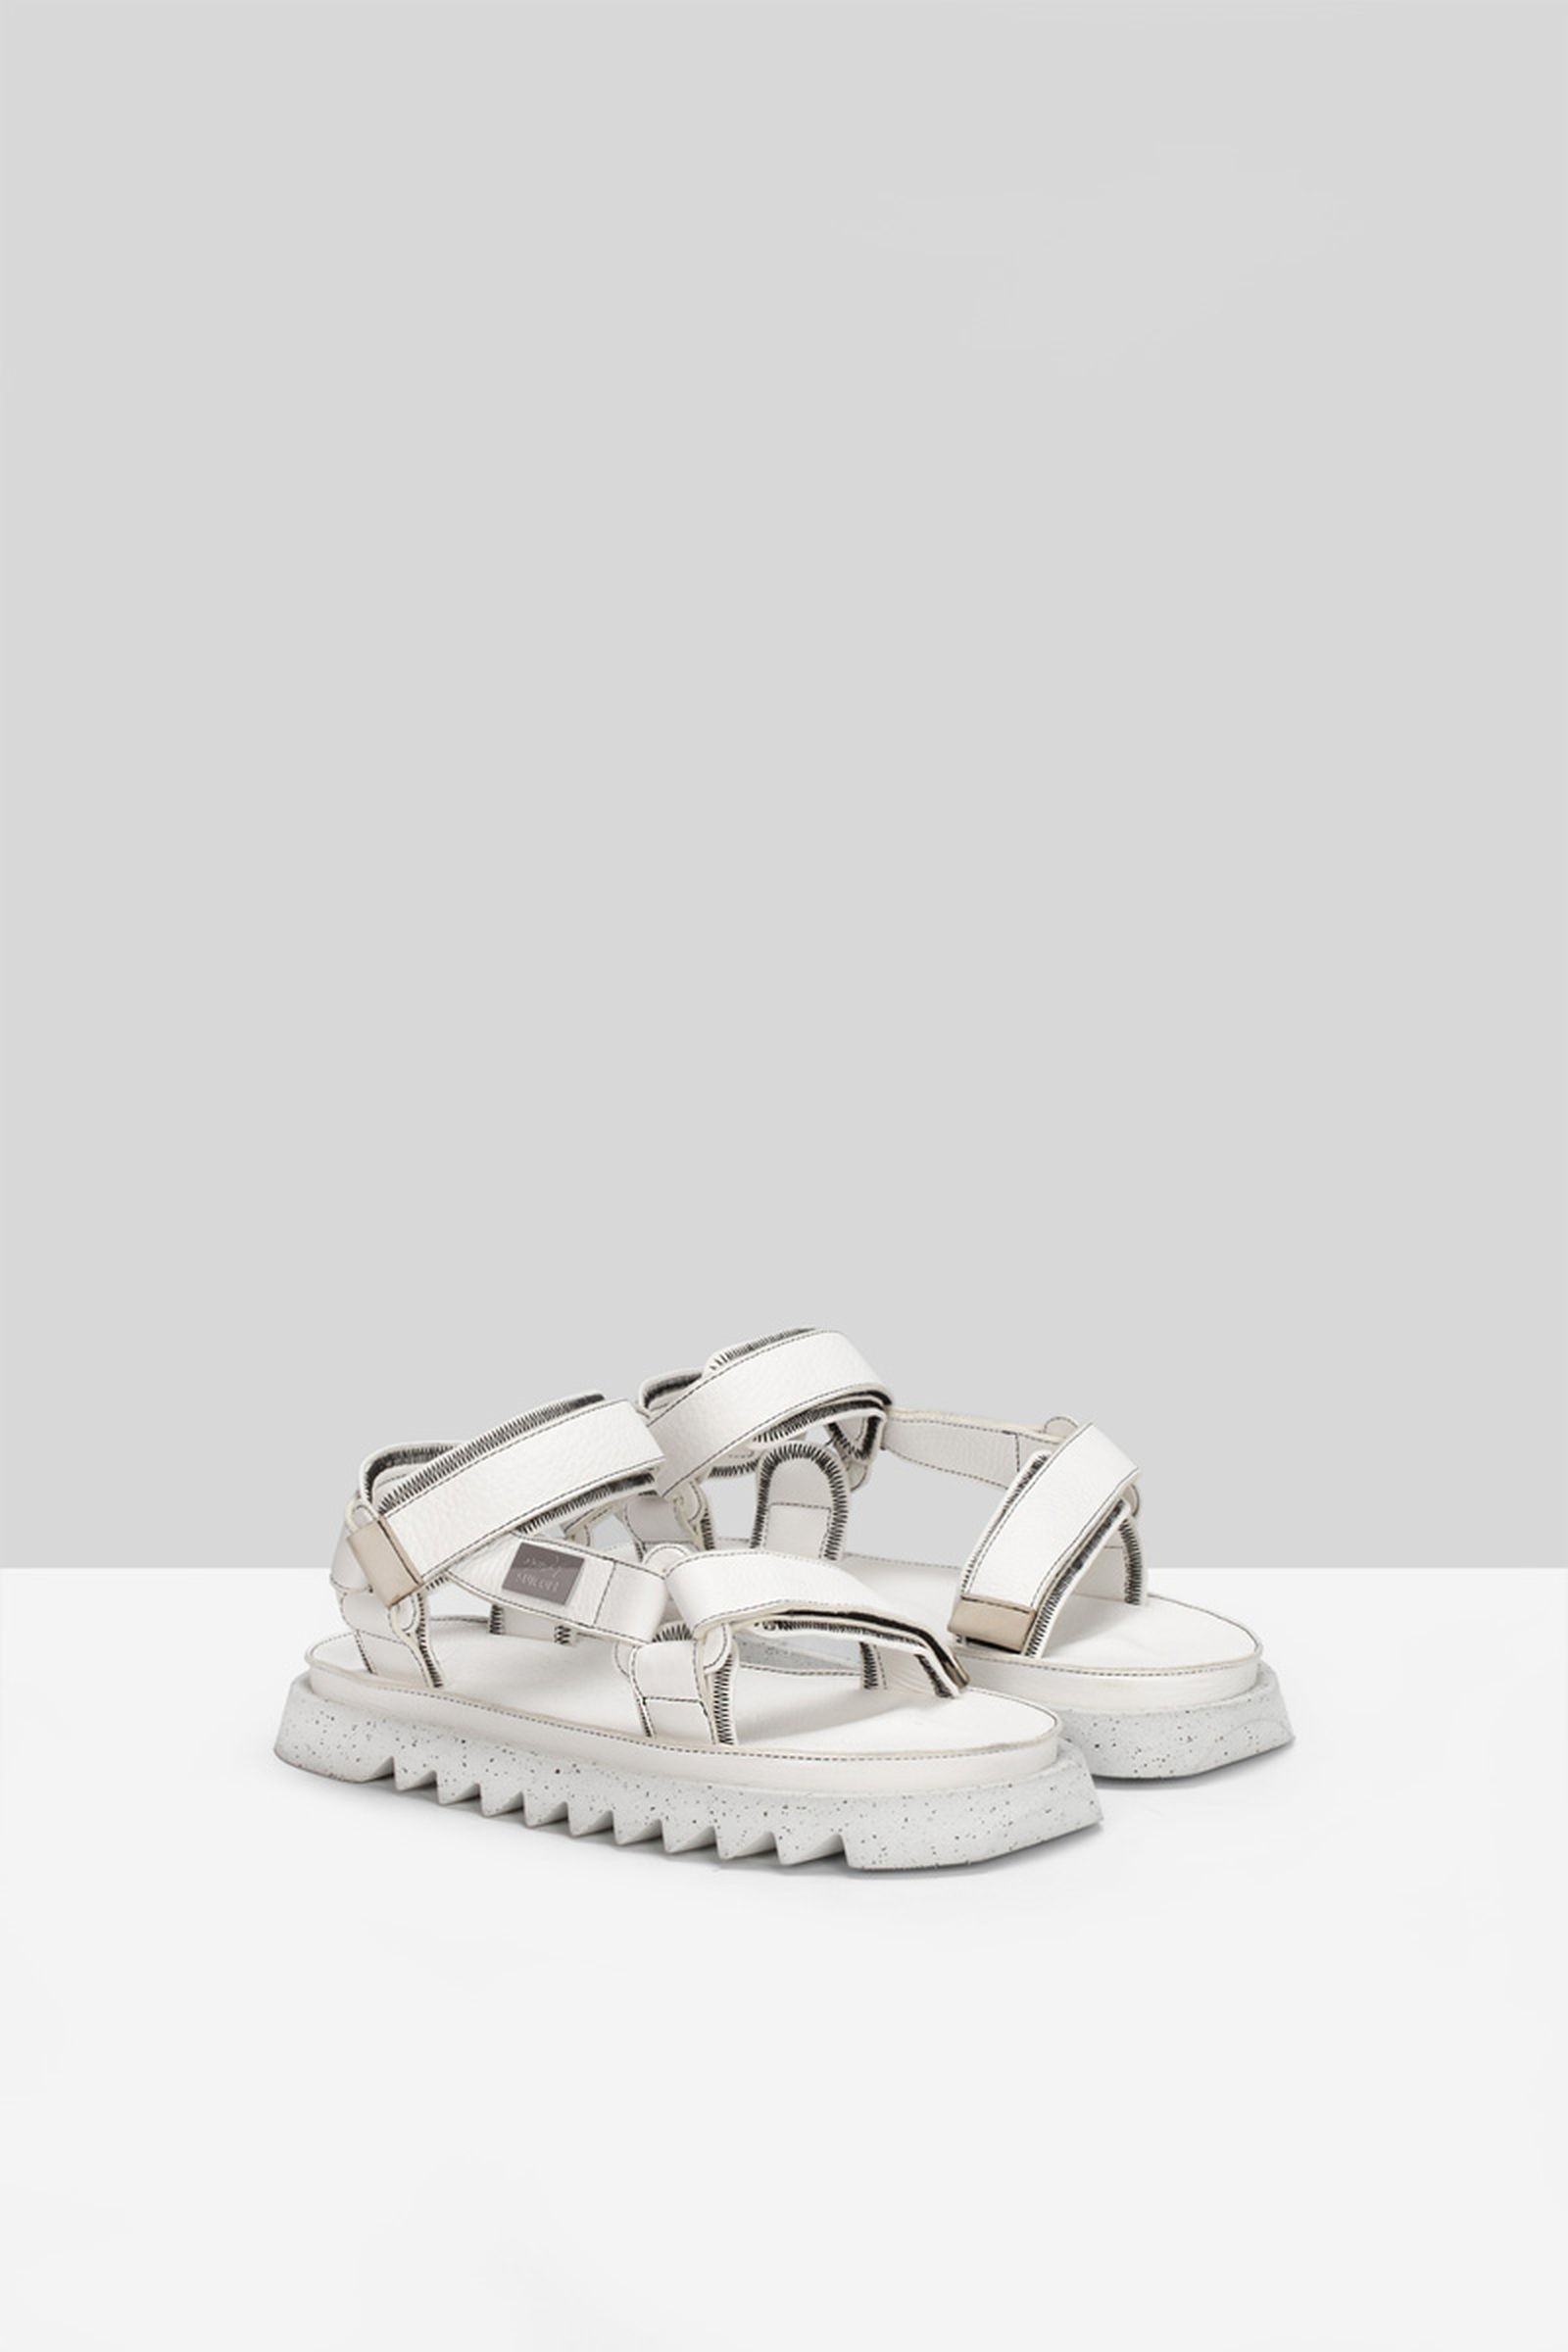 marsell-suicoke-ss21-collection-release-date-price-2